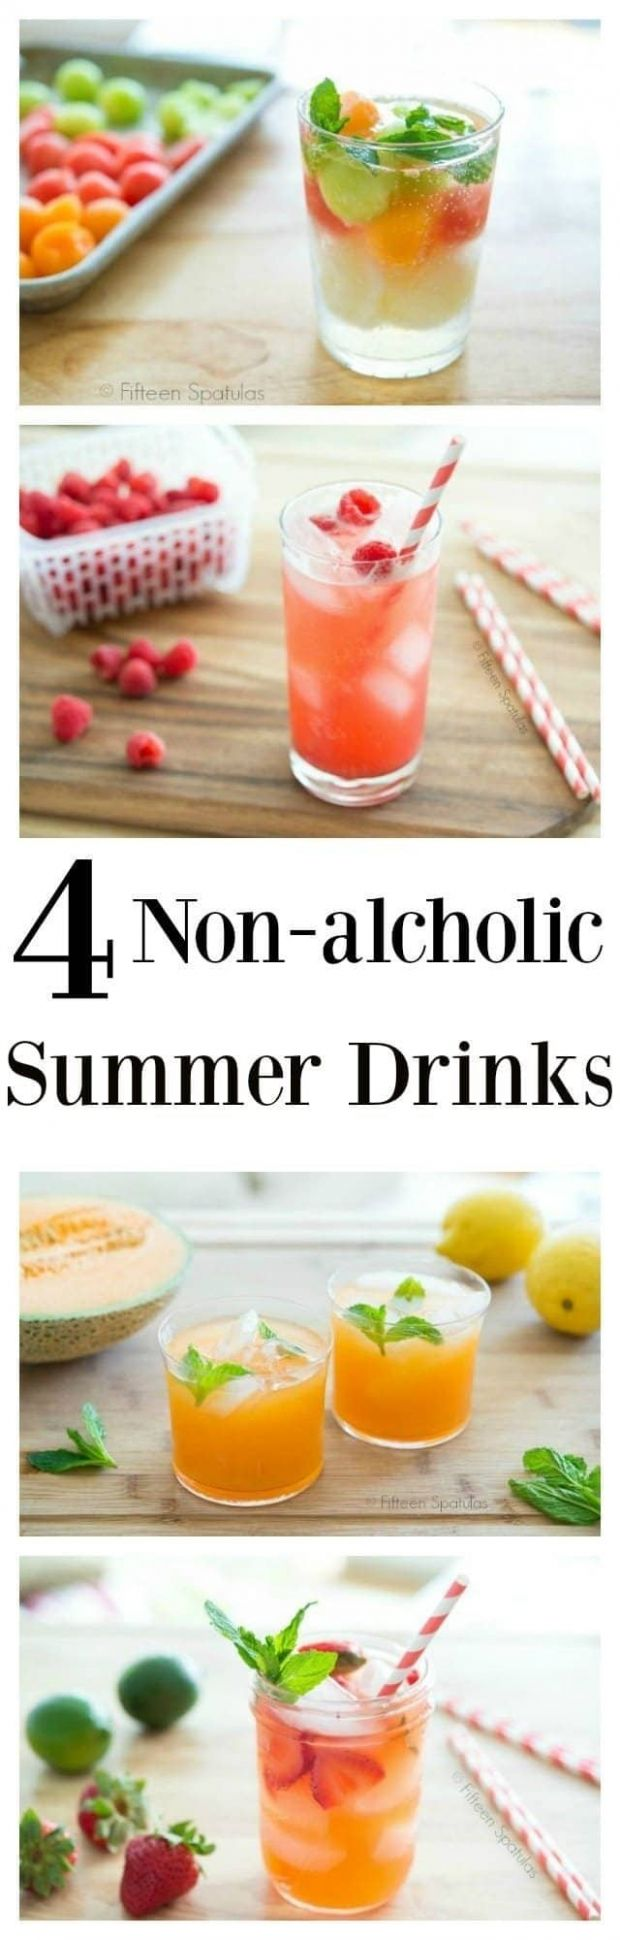 9 Refreshing Summer Drinks - All Non Alcoholic and Easy to Make!